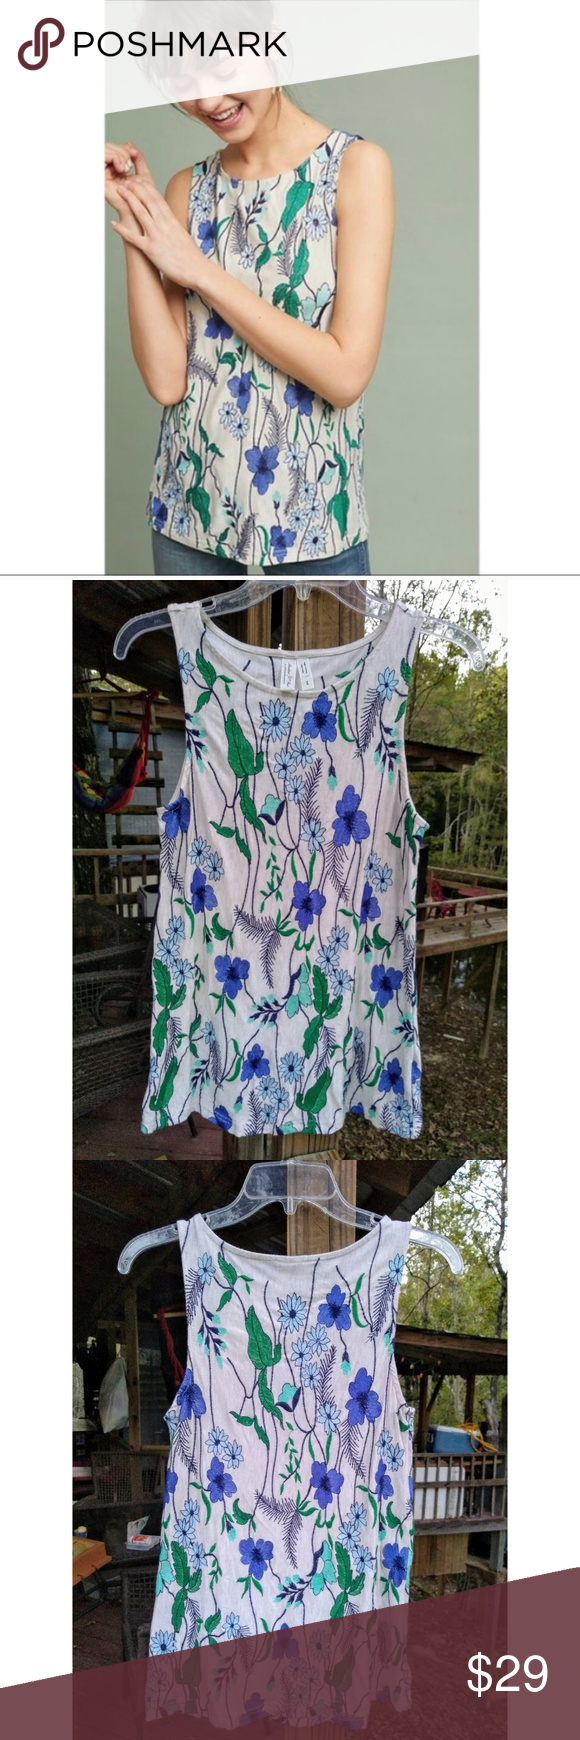 Anthro Meadow Rue Cartagena Embroidered Tank Top Very Good